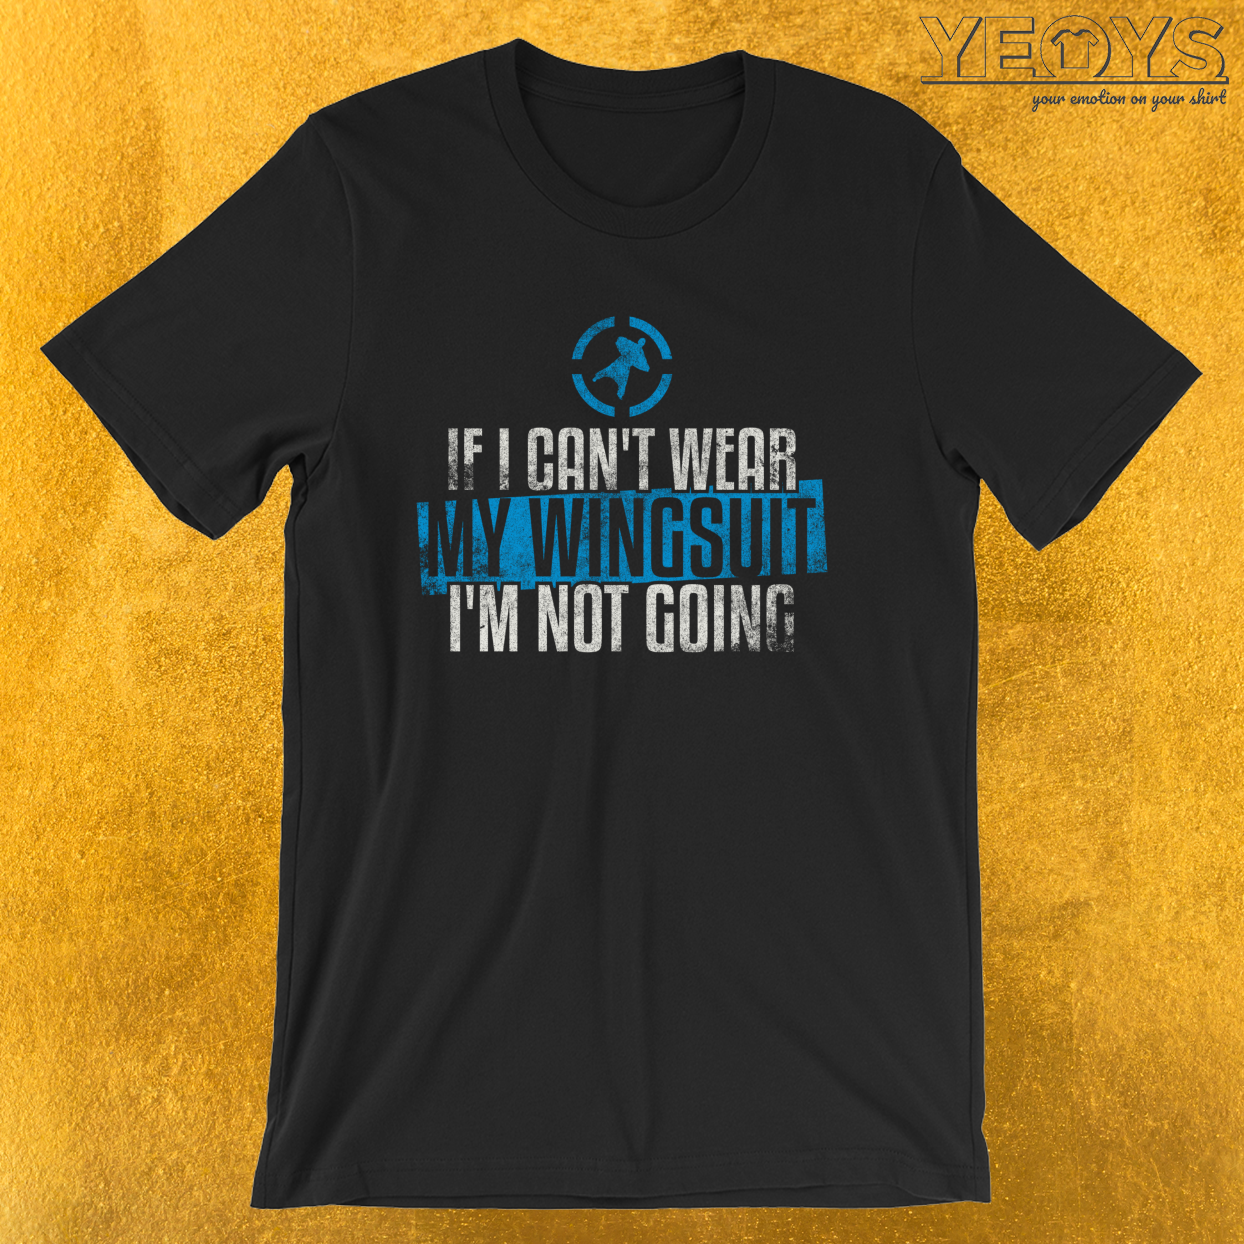 If I Can't Wear My Wingsuit I'm Not Going – Base jumping Tee